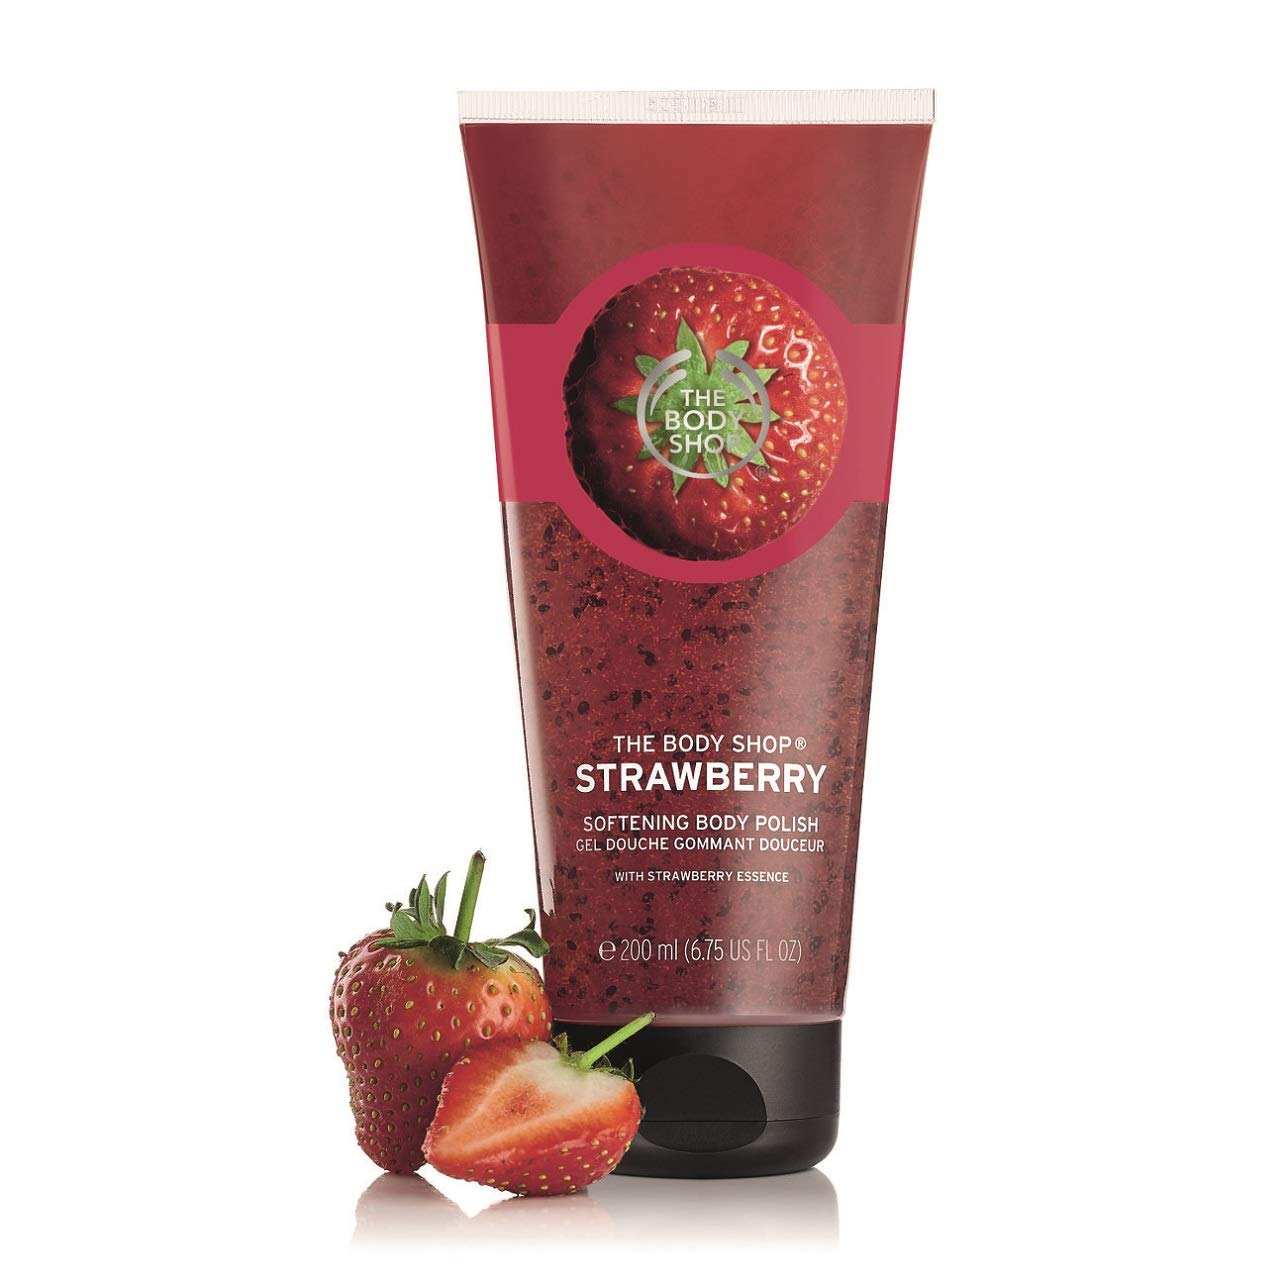 The Body Shop Strawberry Body Polish Scrub